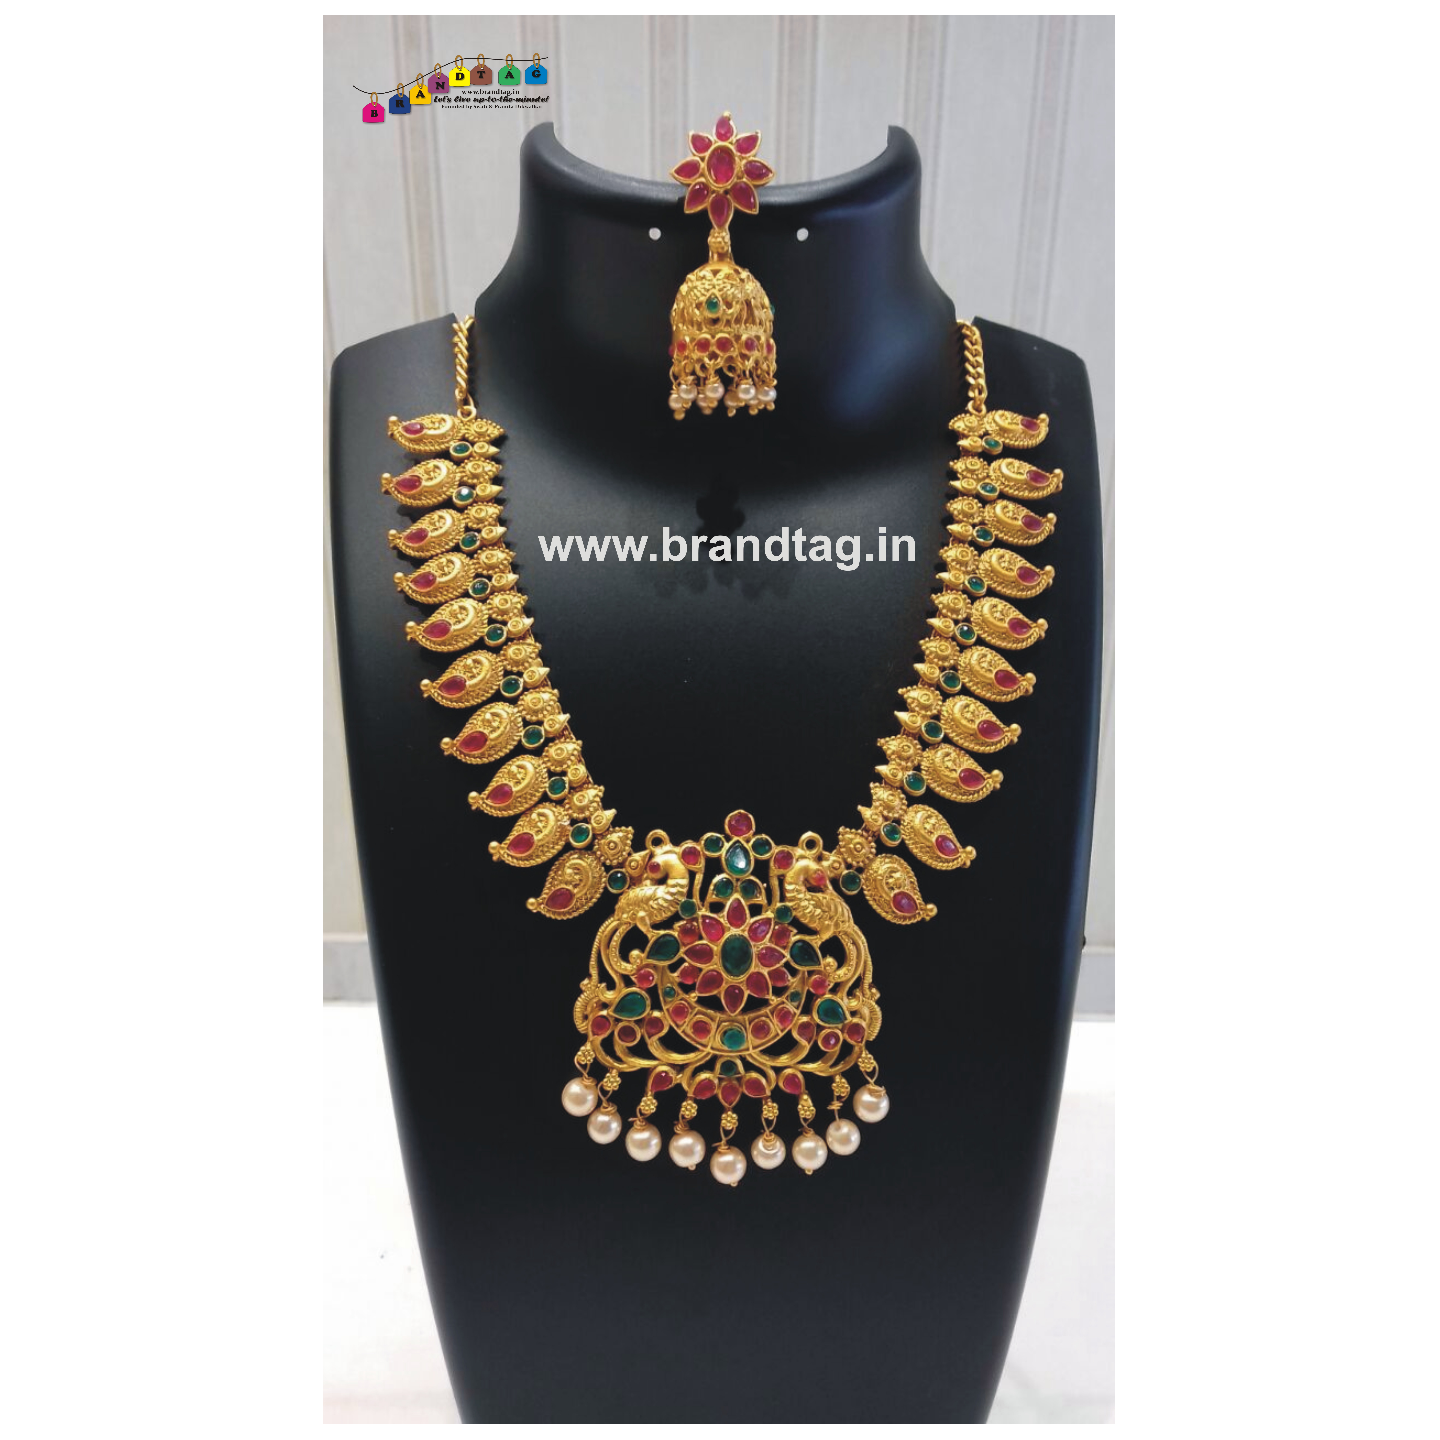 Diwali Collection - Captivating Golden Necklace set!